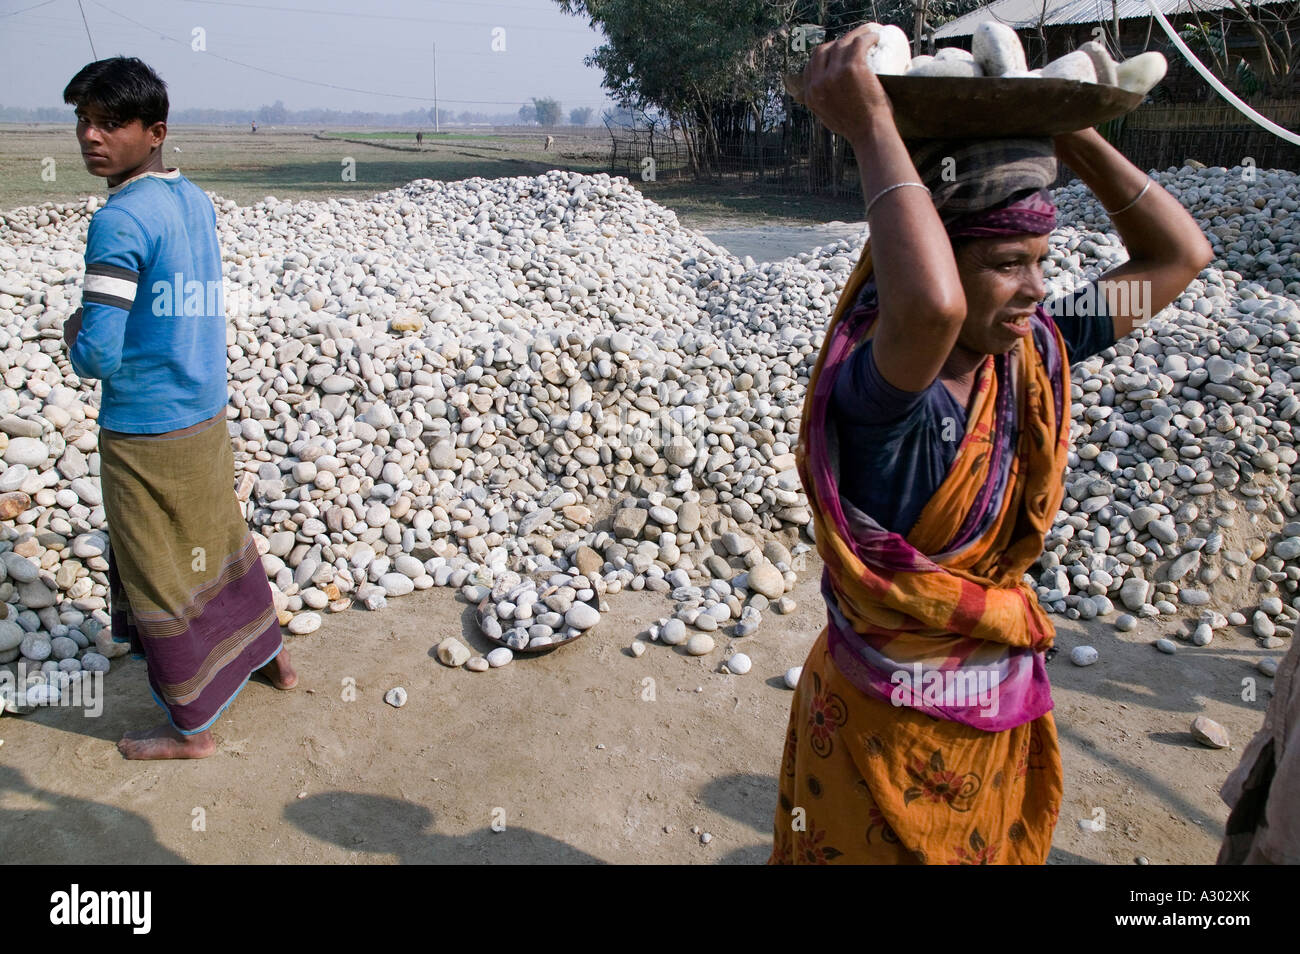 A woman carries large rocks on her head to a machine that will break them down to smaller rocks in northern Bangladesh - Stock Image